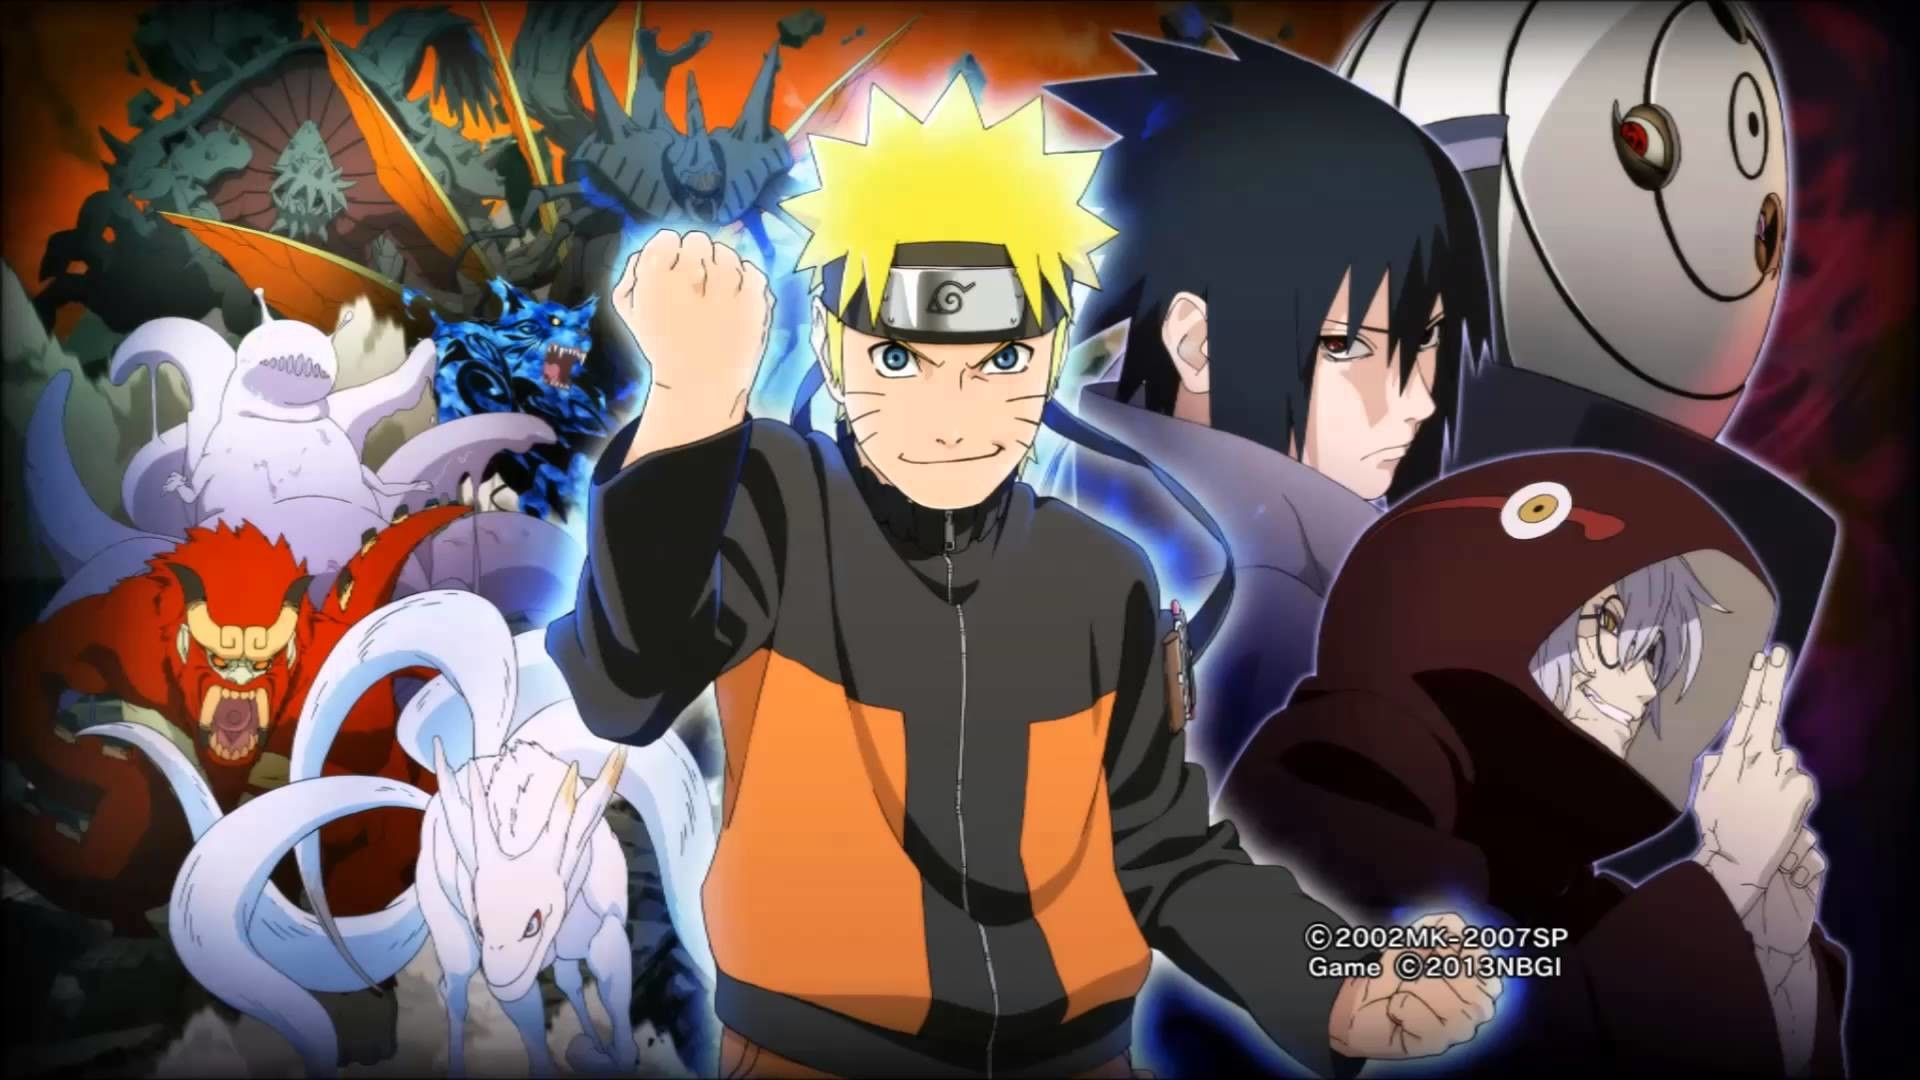 1920x1080 Naruto Shippuden wallpapers HD | Wallpapers, Backgrounds, Images .